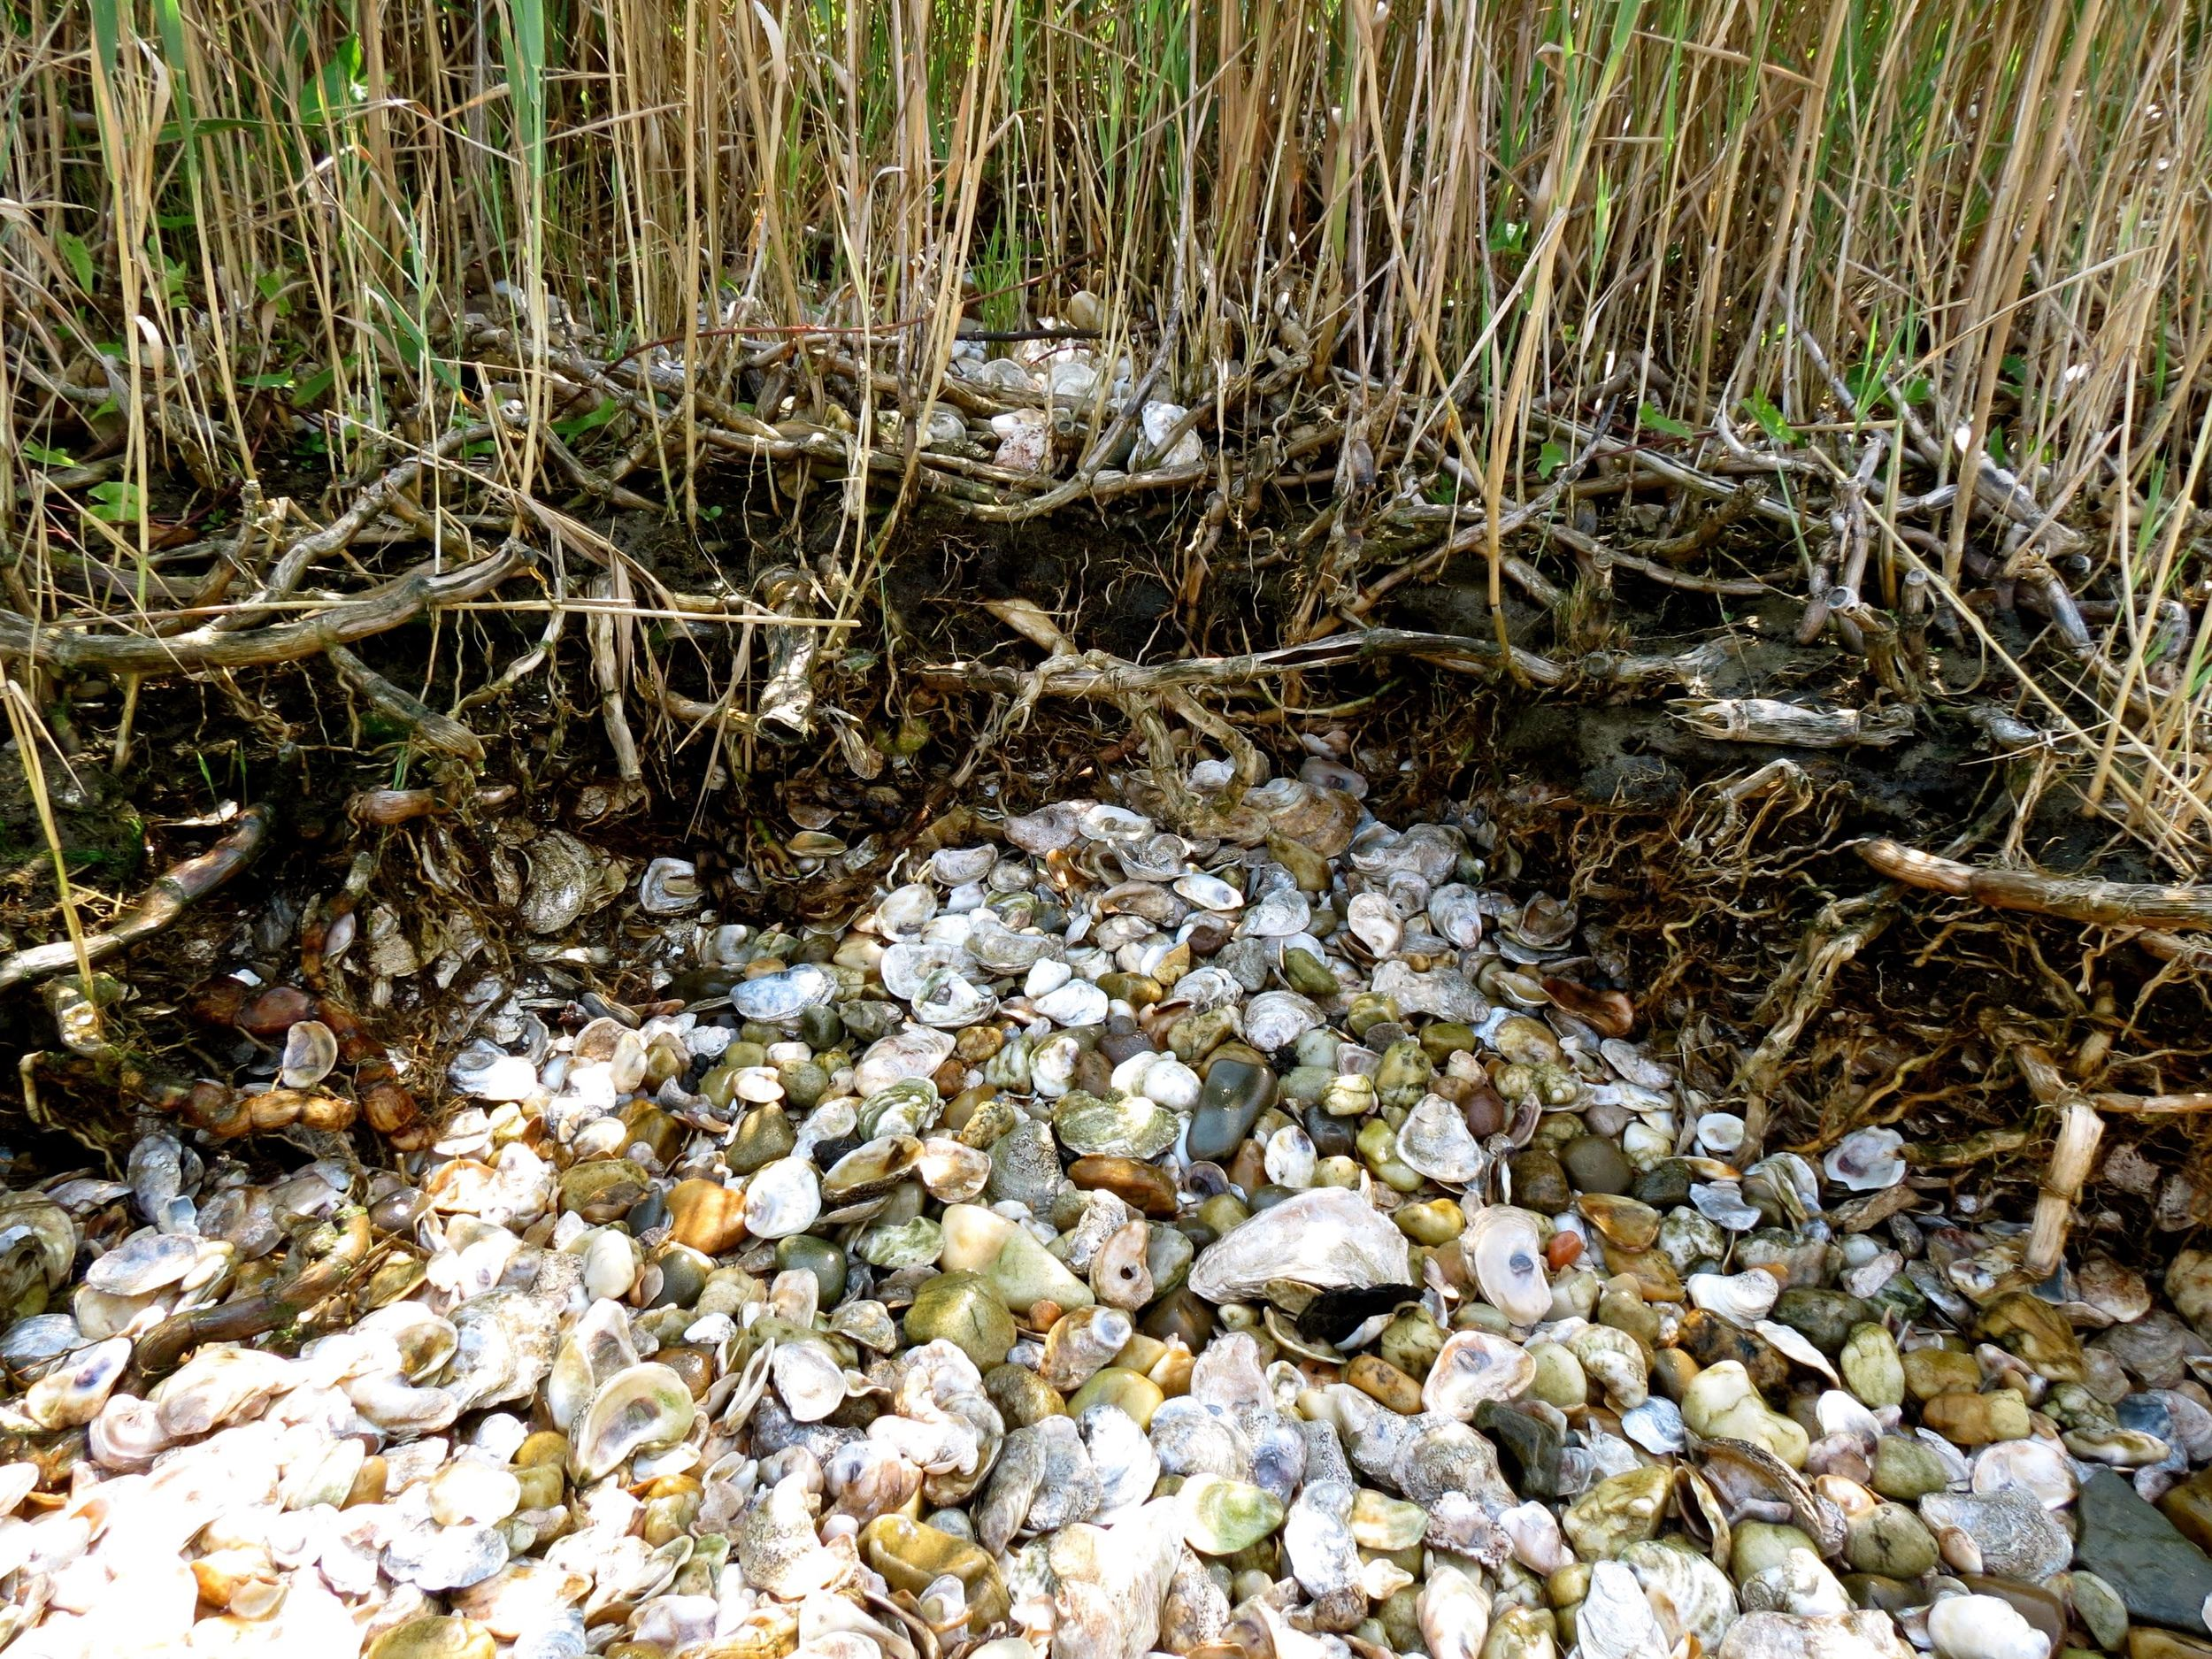 A midden on Eastern Neck Island. Image by author.